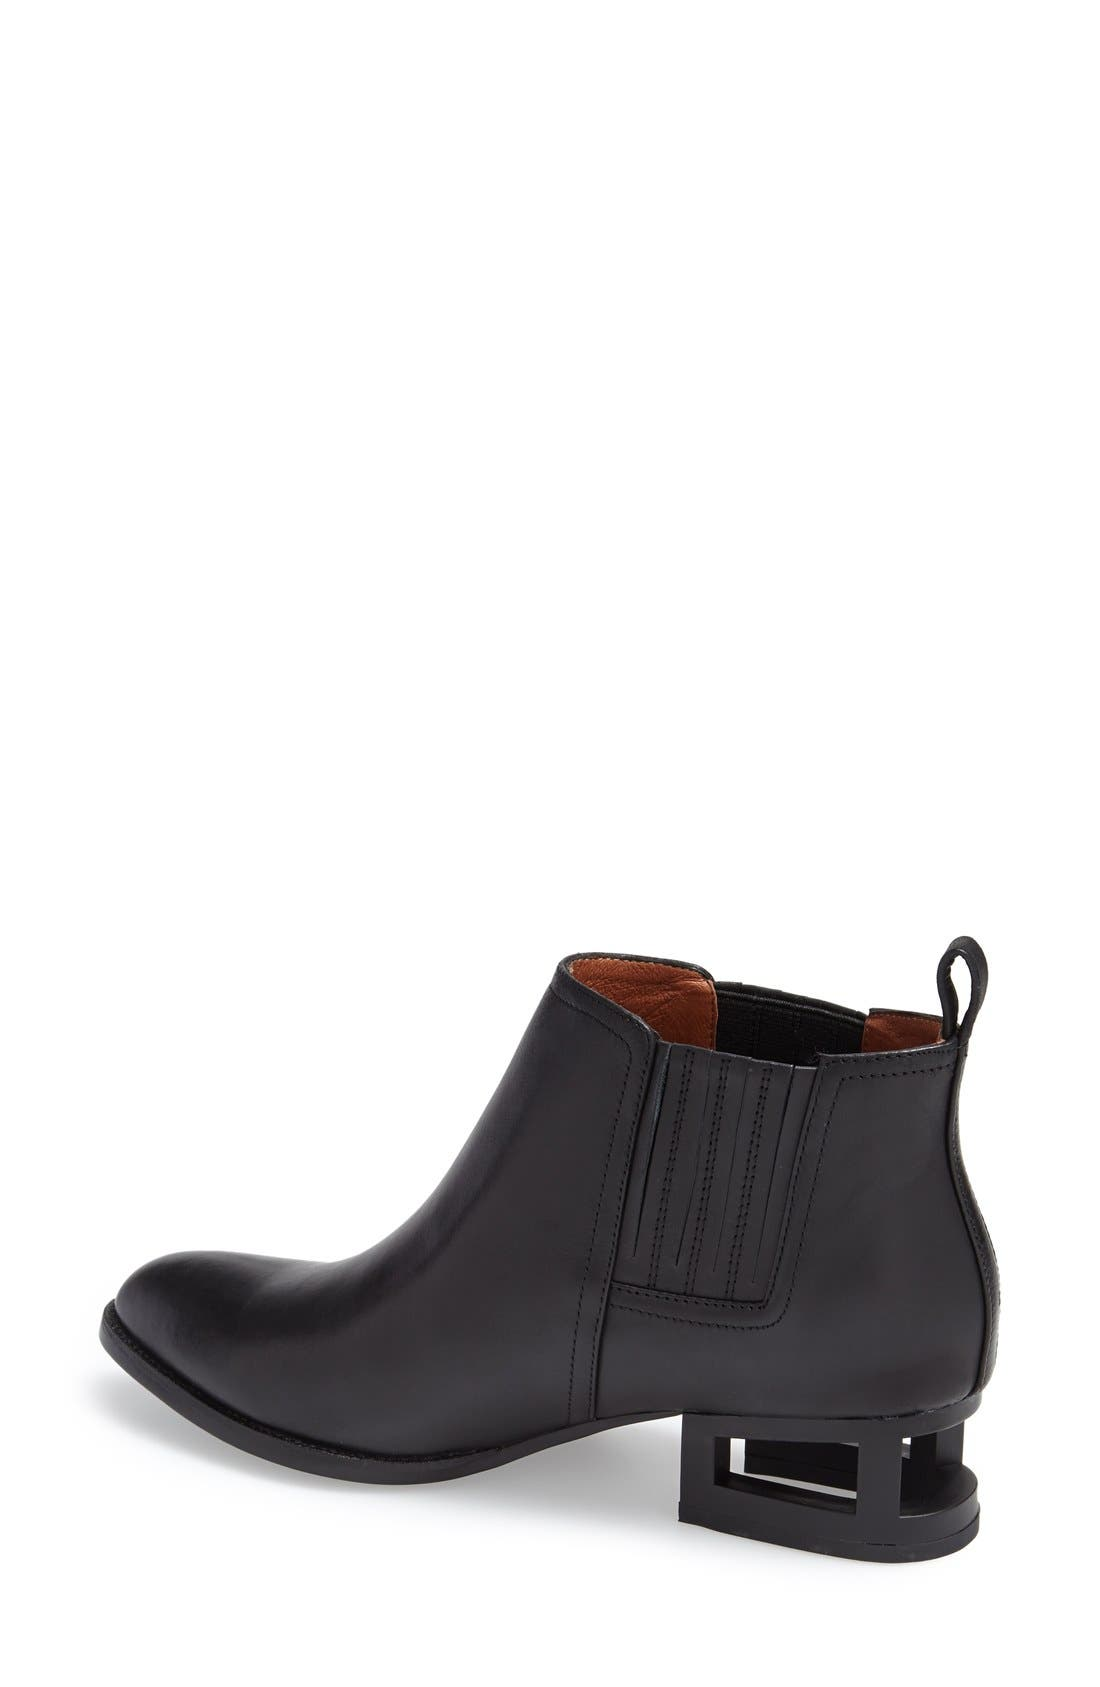 'Metcalf' Caged Heel Bootie,                             Alternate thumbnail 2, color,                             001